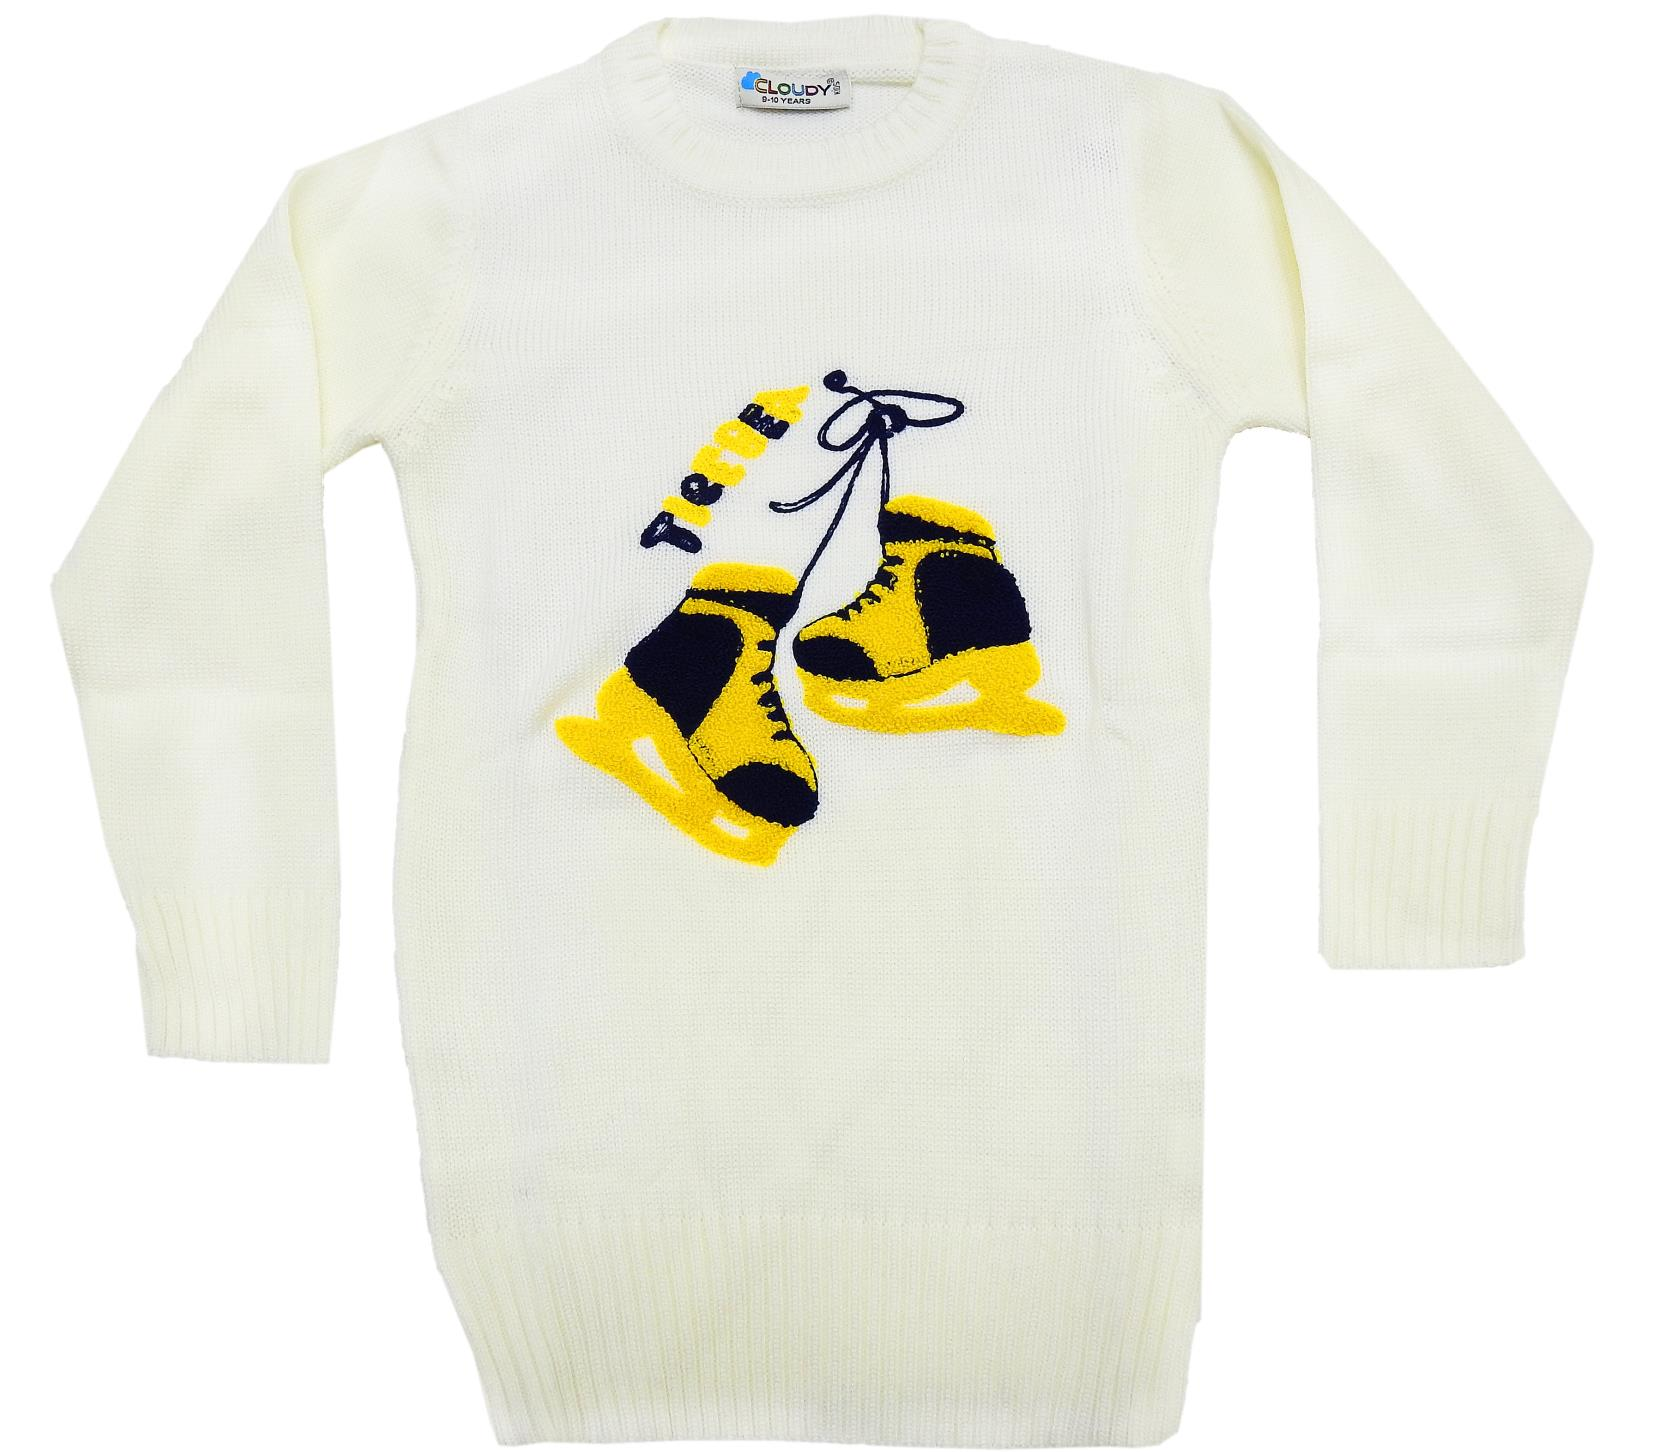 WHOLESALE SKATE PRINTED DESIN SWEATER FOR GIRL (5-7-9 AGE)